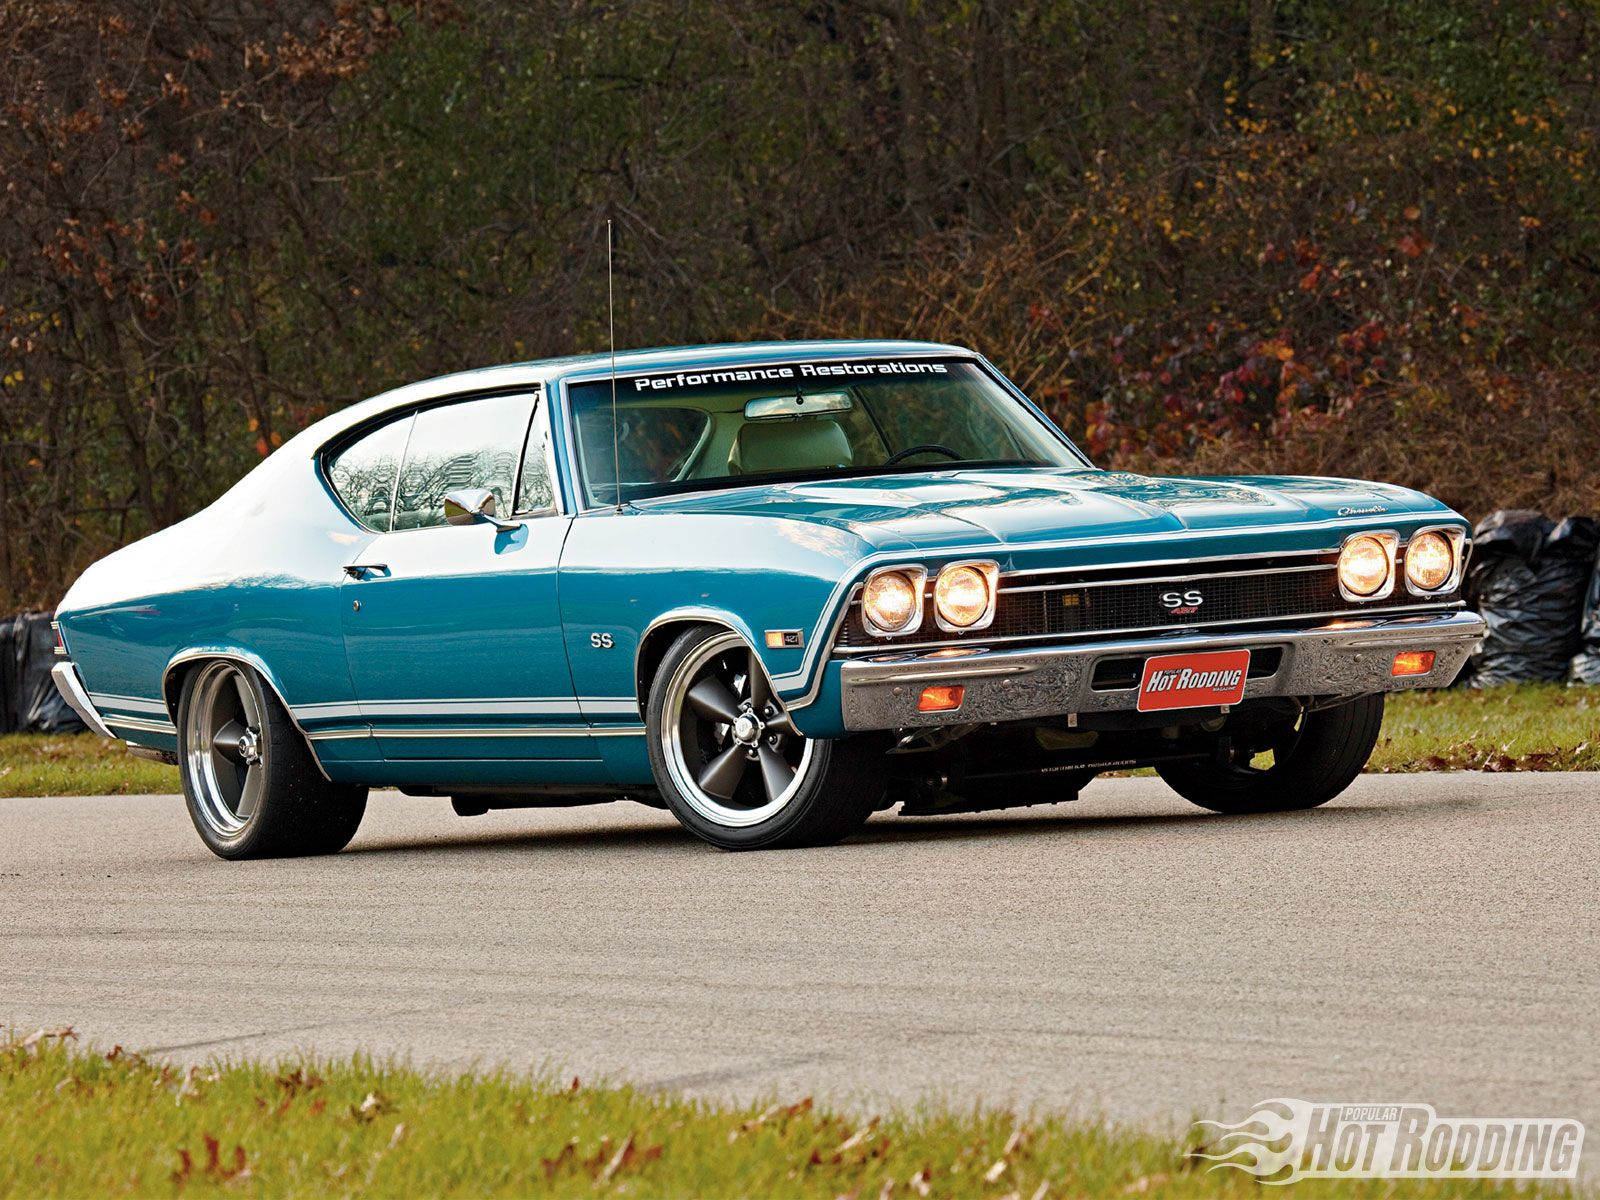 1968 Chevy Chevelle Classic Cars Muscle Hot Rods Cars Muscle